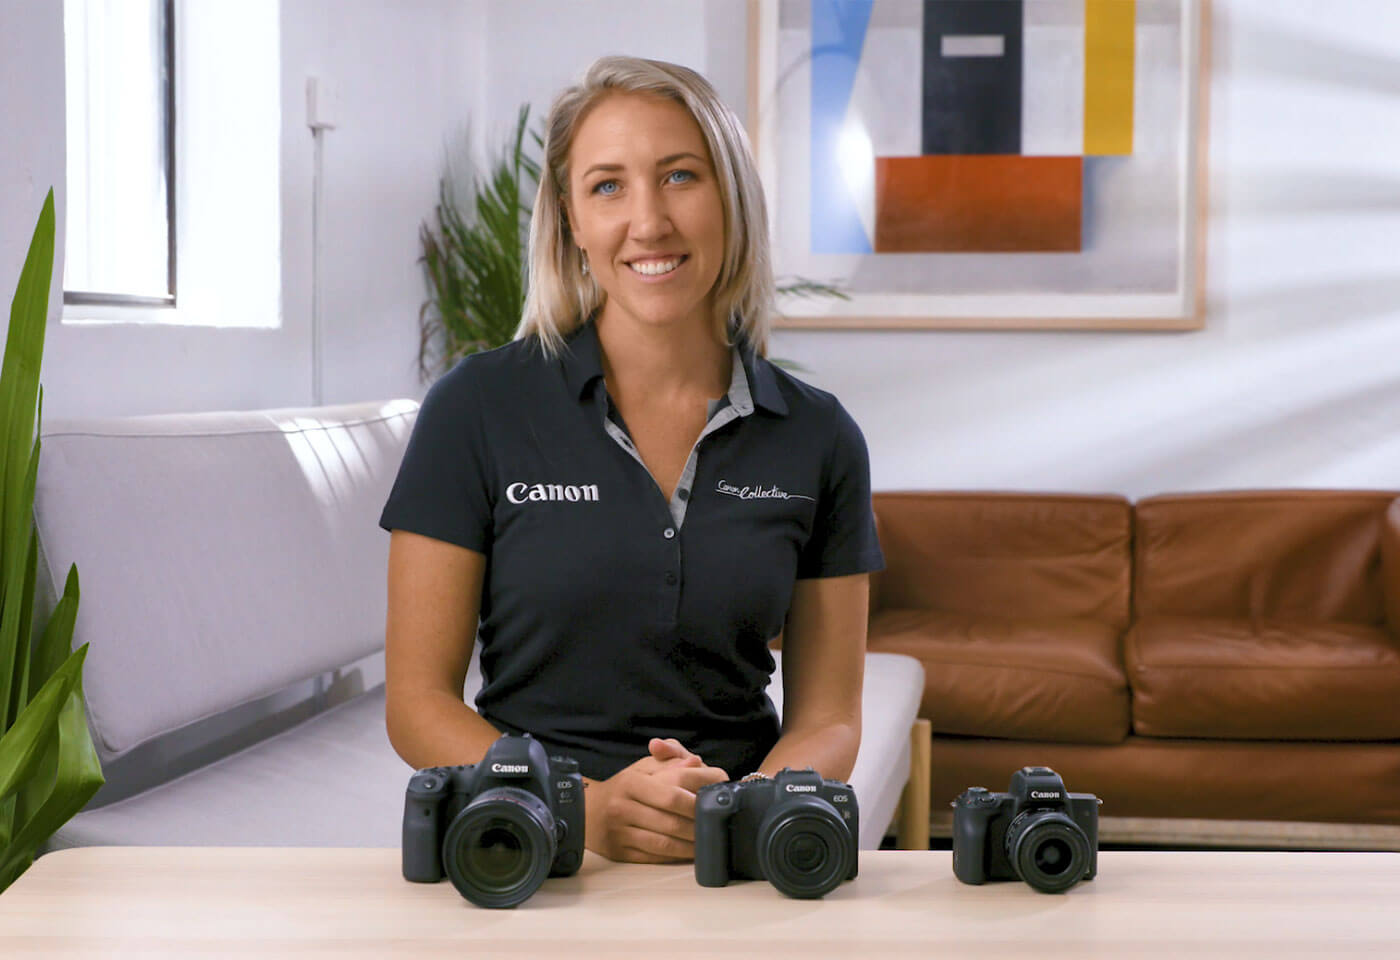 Collective Ambassador Jenn Cooper comparing EOS R, EOS M and DSLR cameras